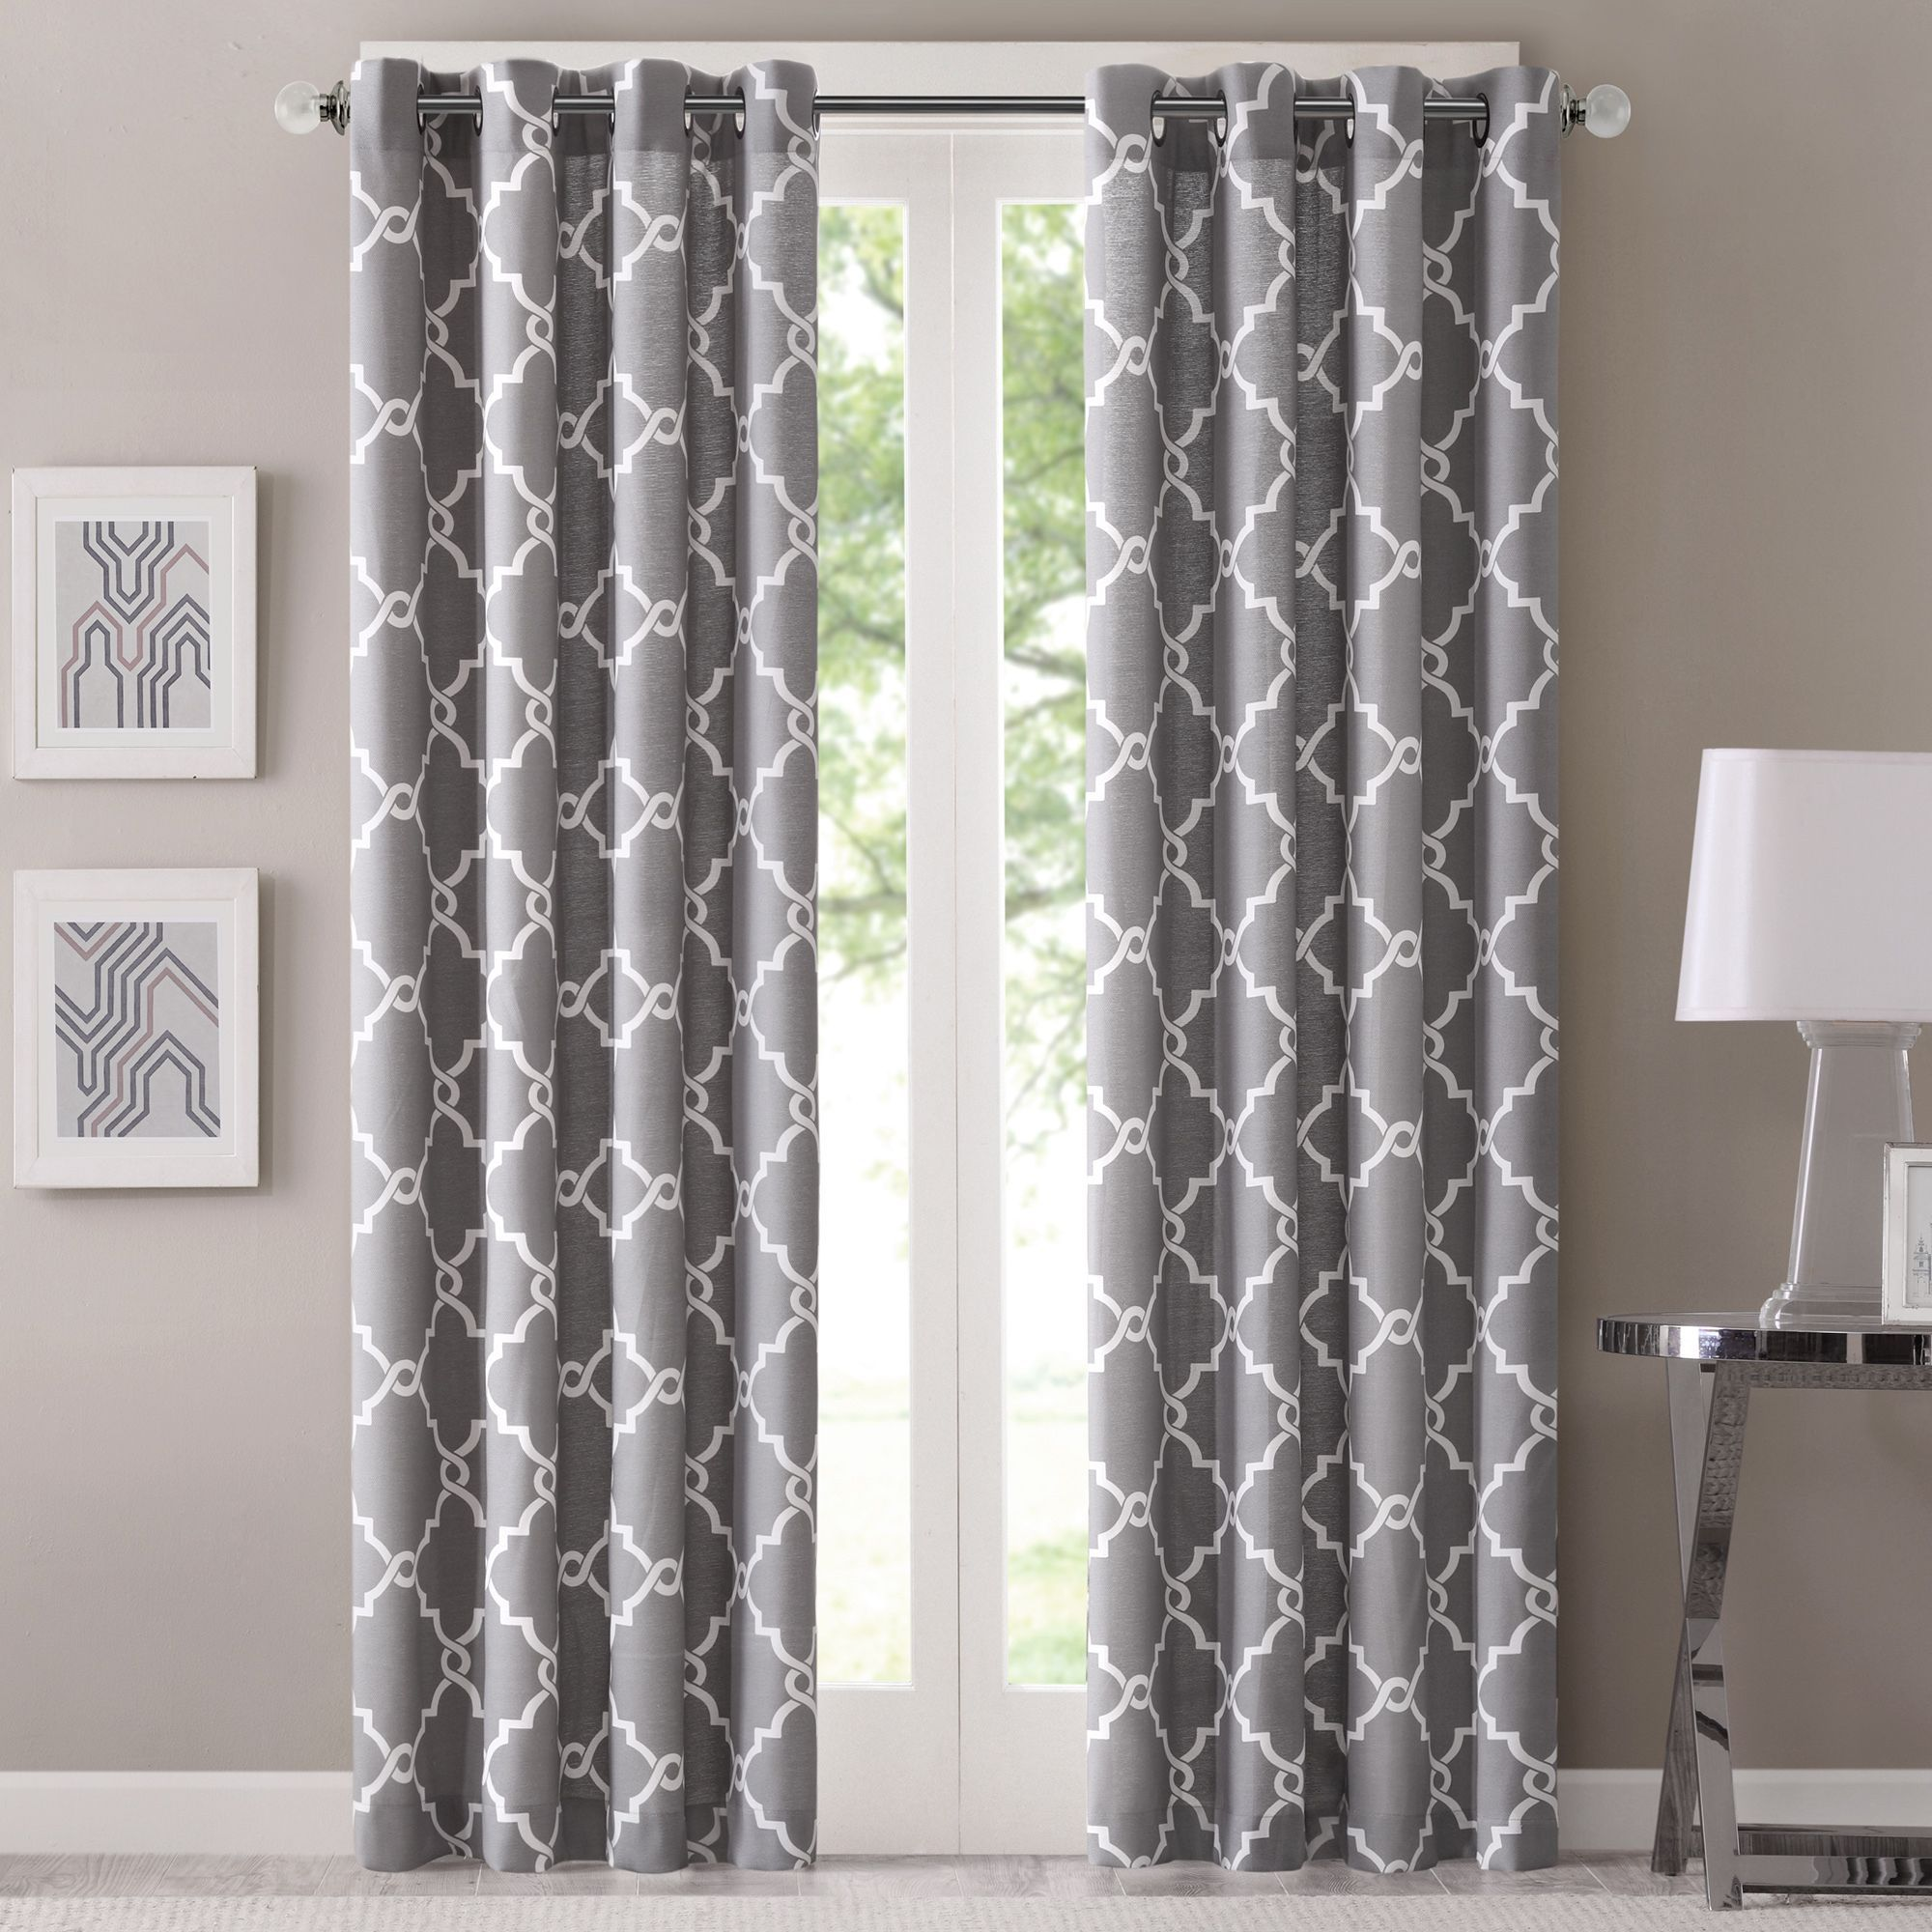 Home decor promotiongrommet window treatments free shipping on